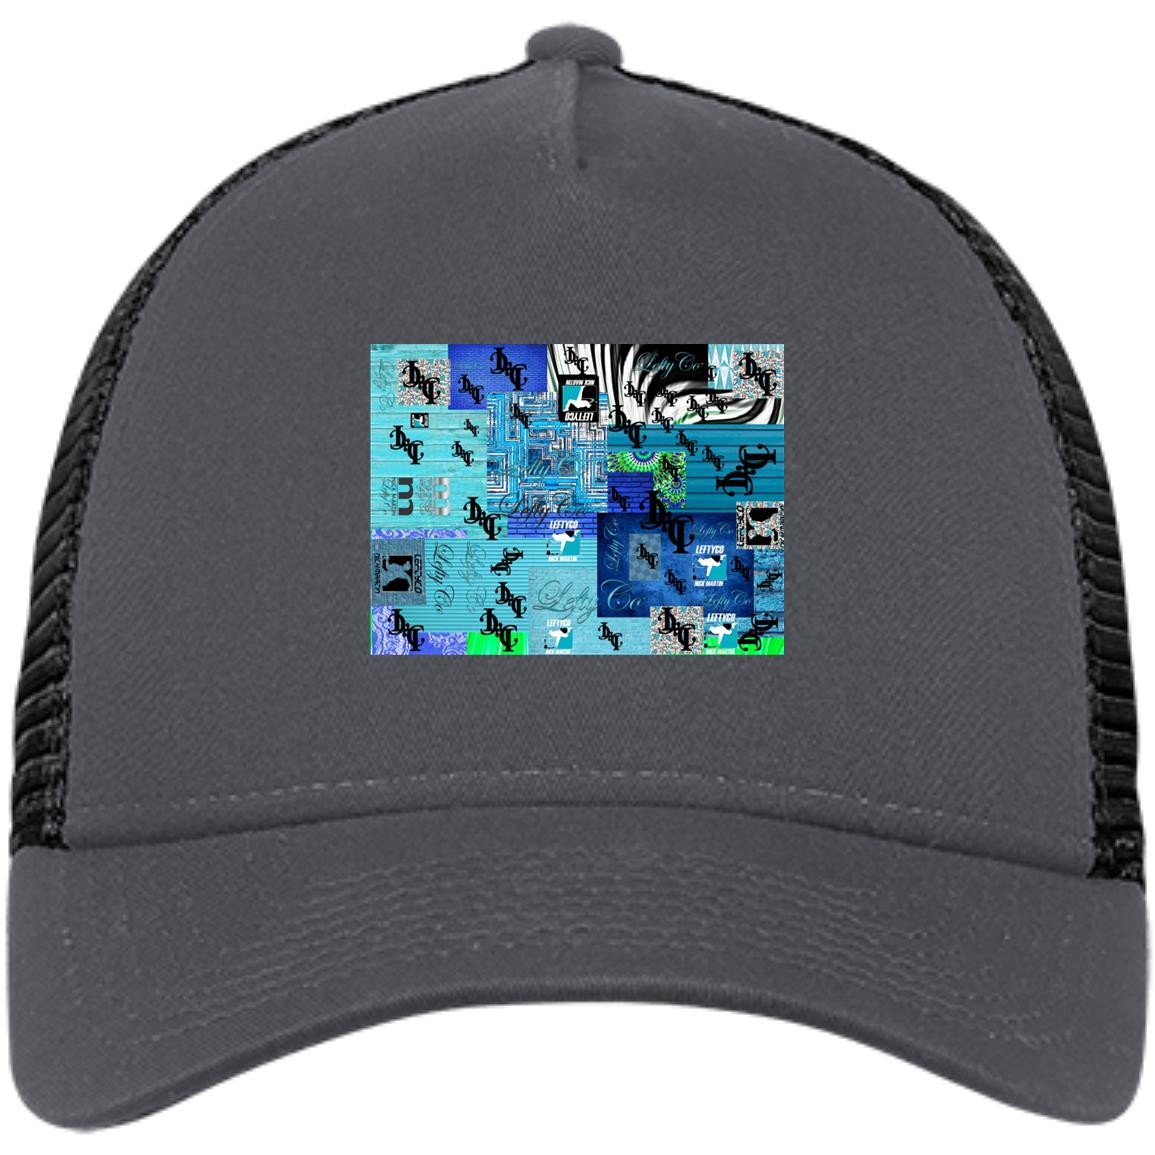 LeftyCo - 718Blues Snapback Trucker Cap - leftyco